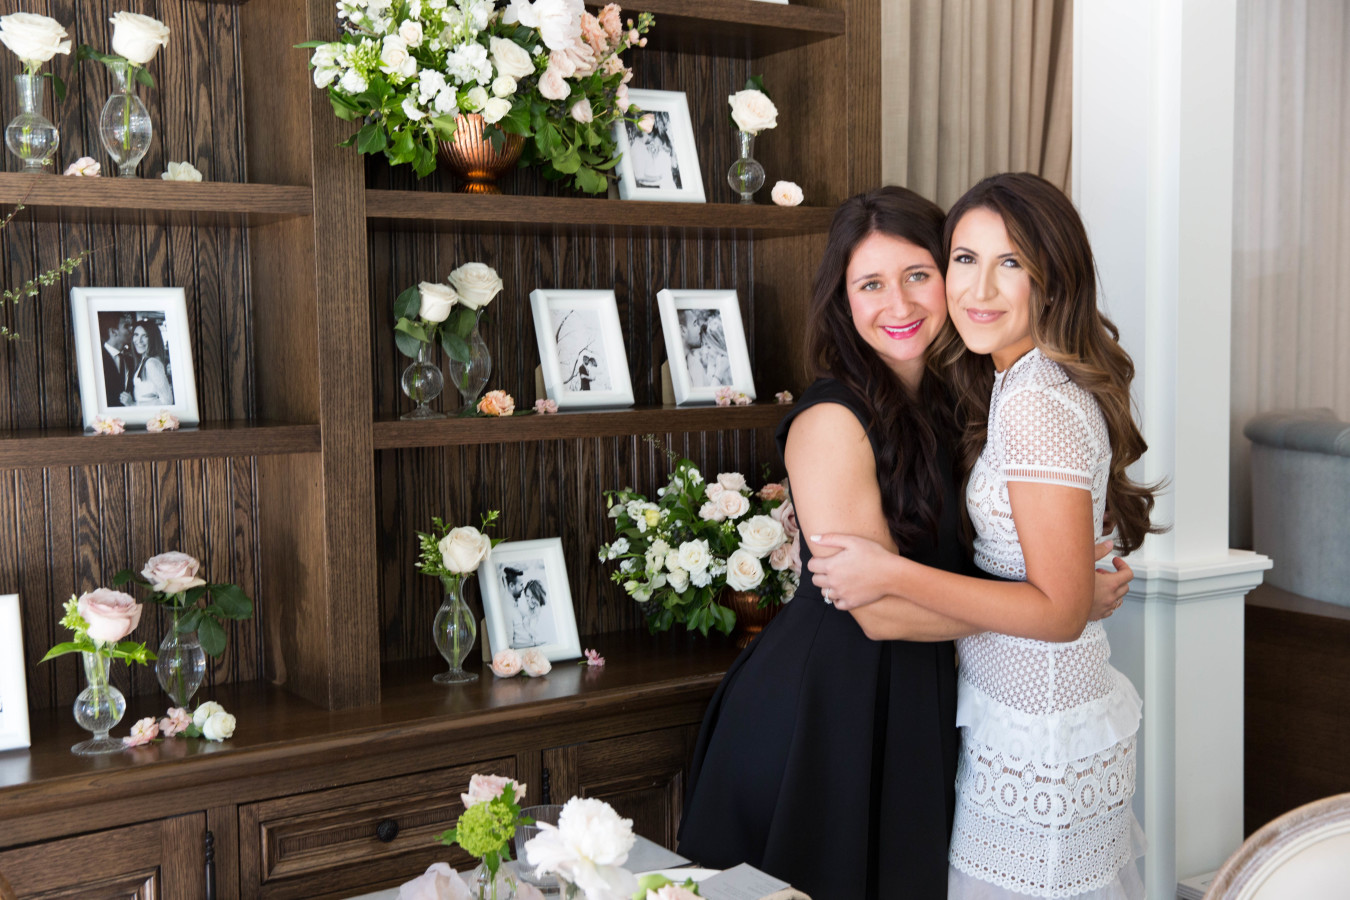 bride-moh-at-bridal-shower http://itgirlweddings.com/tips-for-creating-a-photo-worthy-bridal-shower/